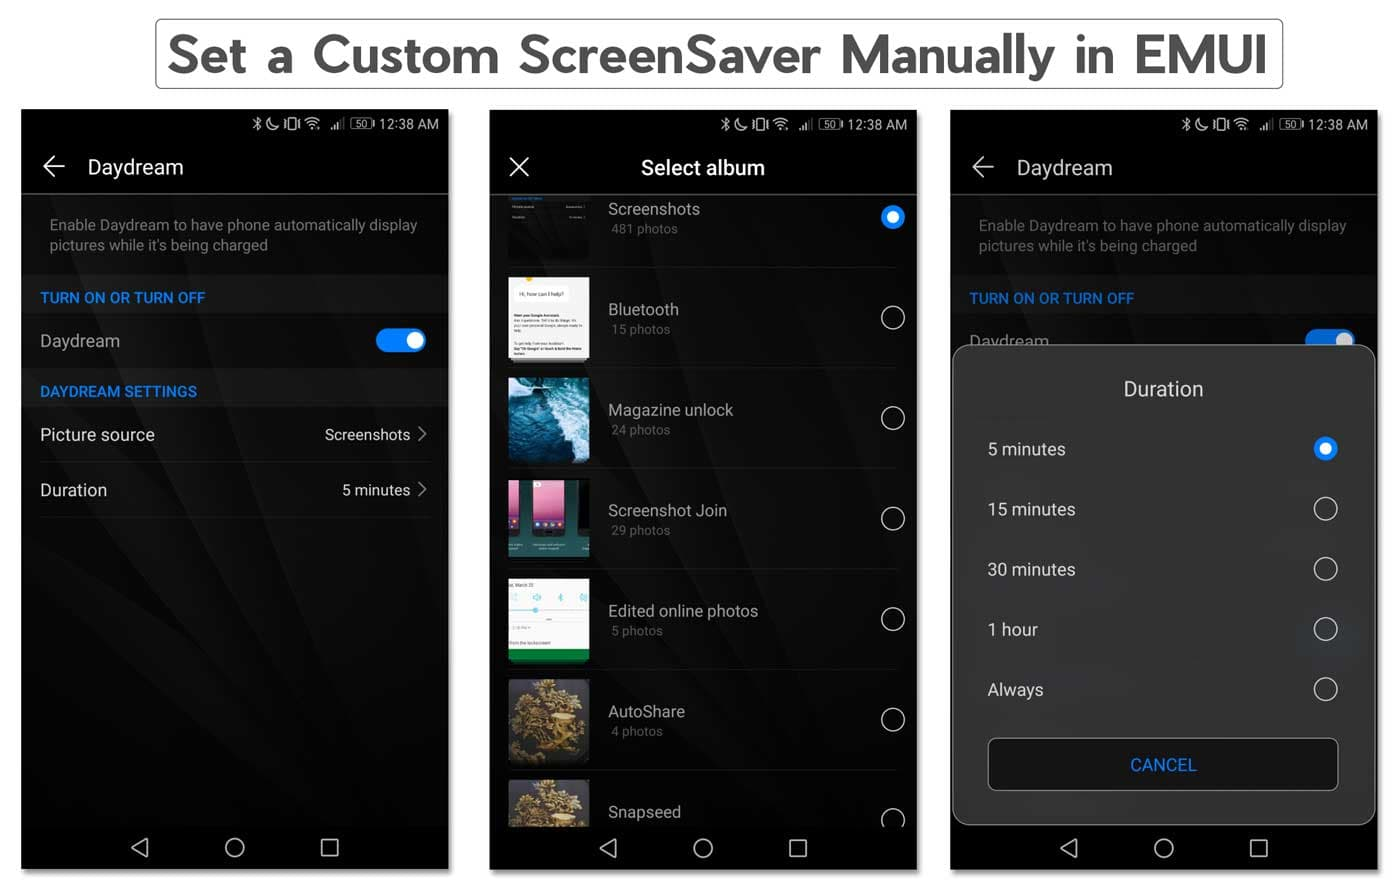 Set a Custom ScreenSaver Manually in EMUI